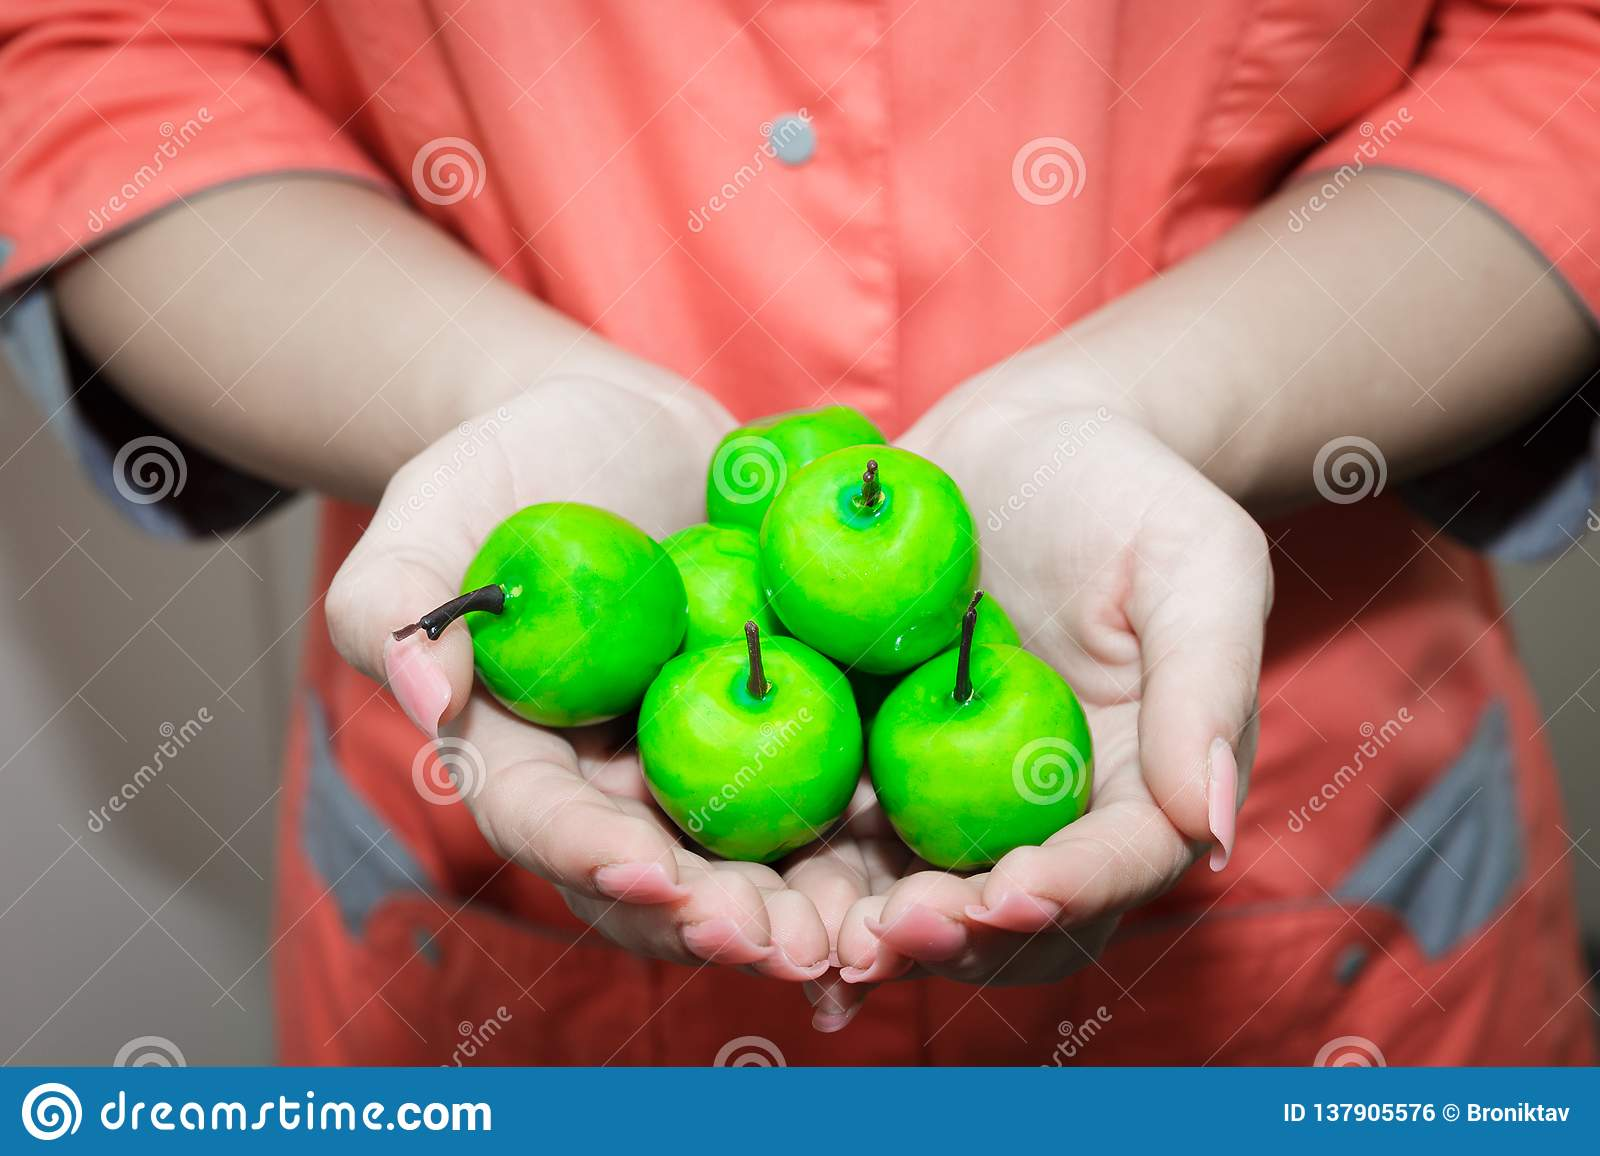 The young girls hand holding a small green Apple. Nutritionist recommends apples